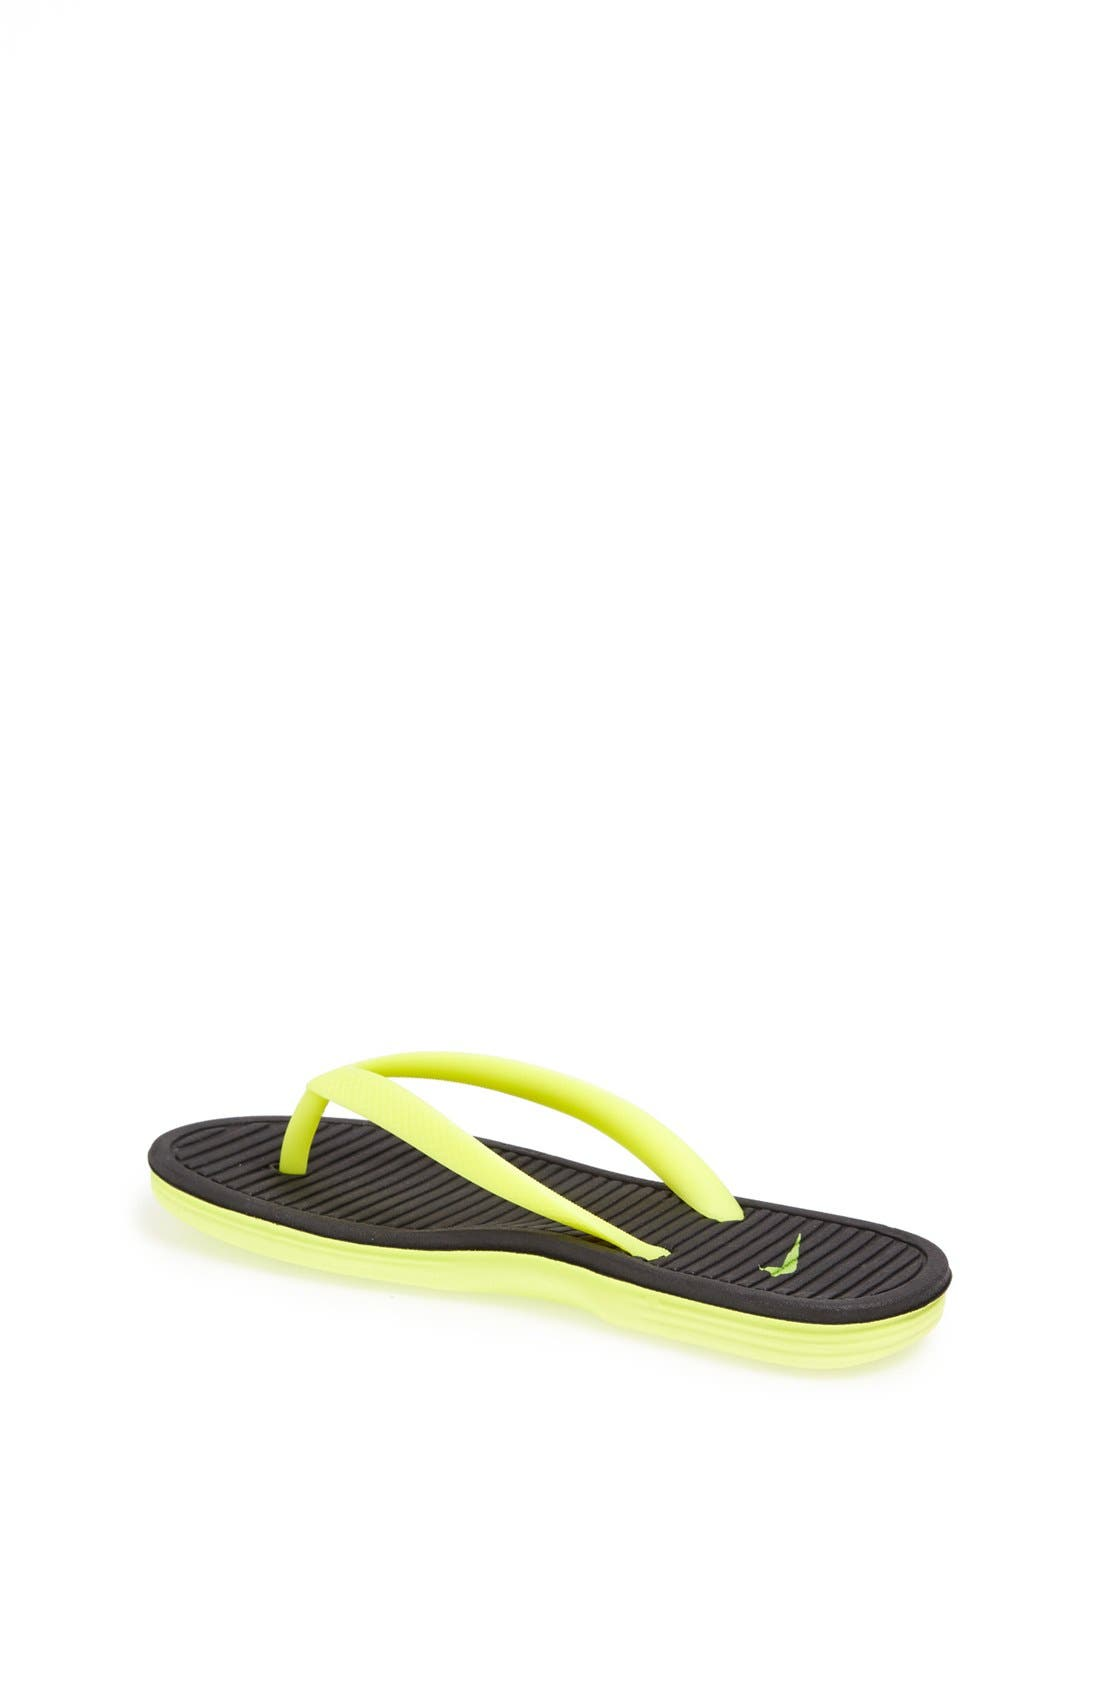 Alternate Image 2  - Nike Solarsoft Thong Sandal (Toddler, Little Kid & Big Kid)